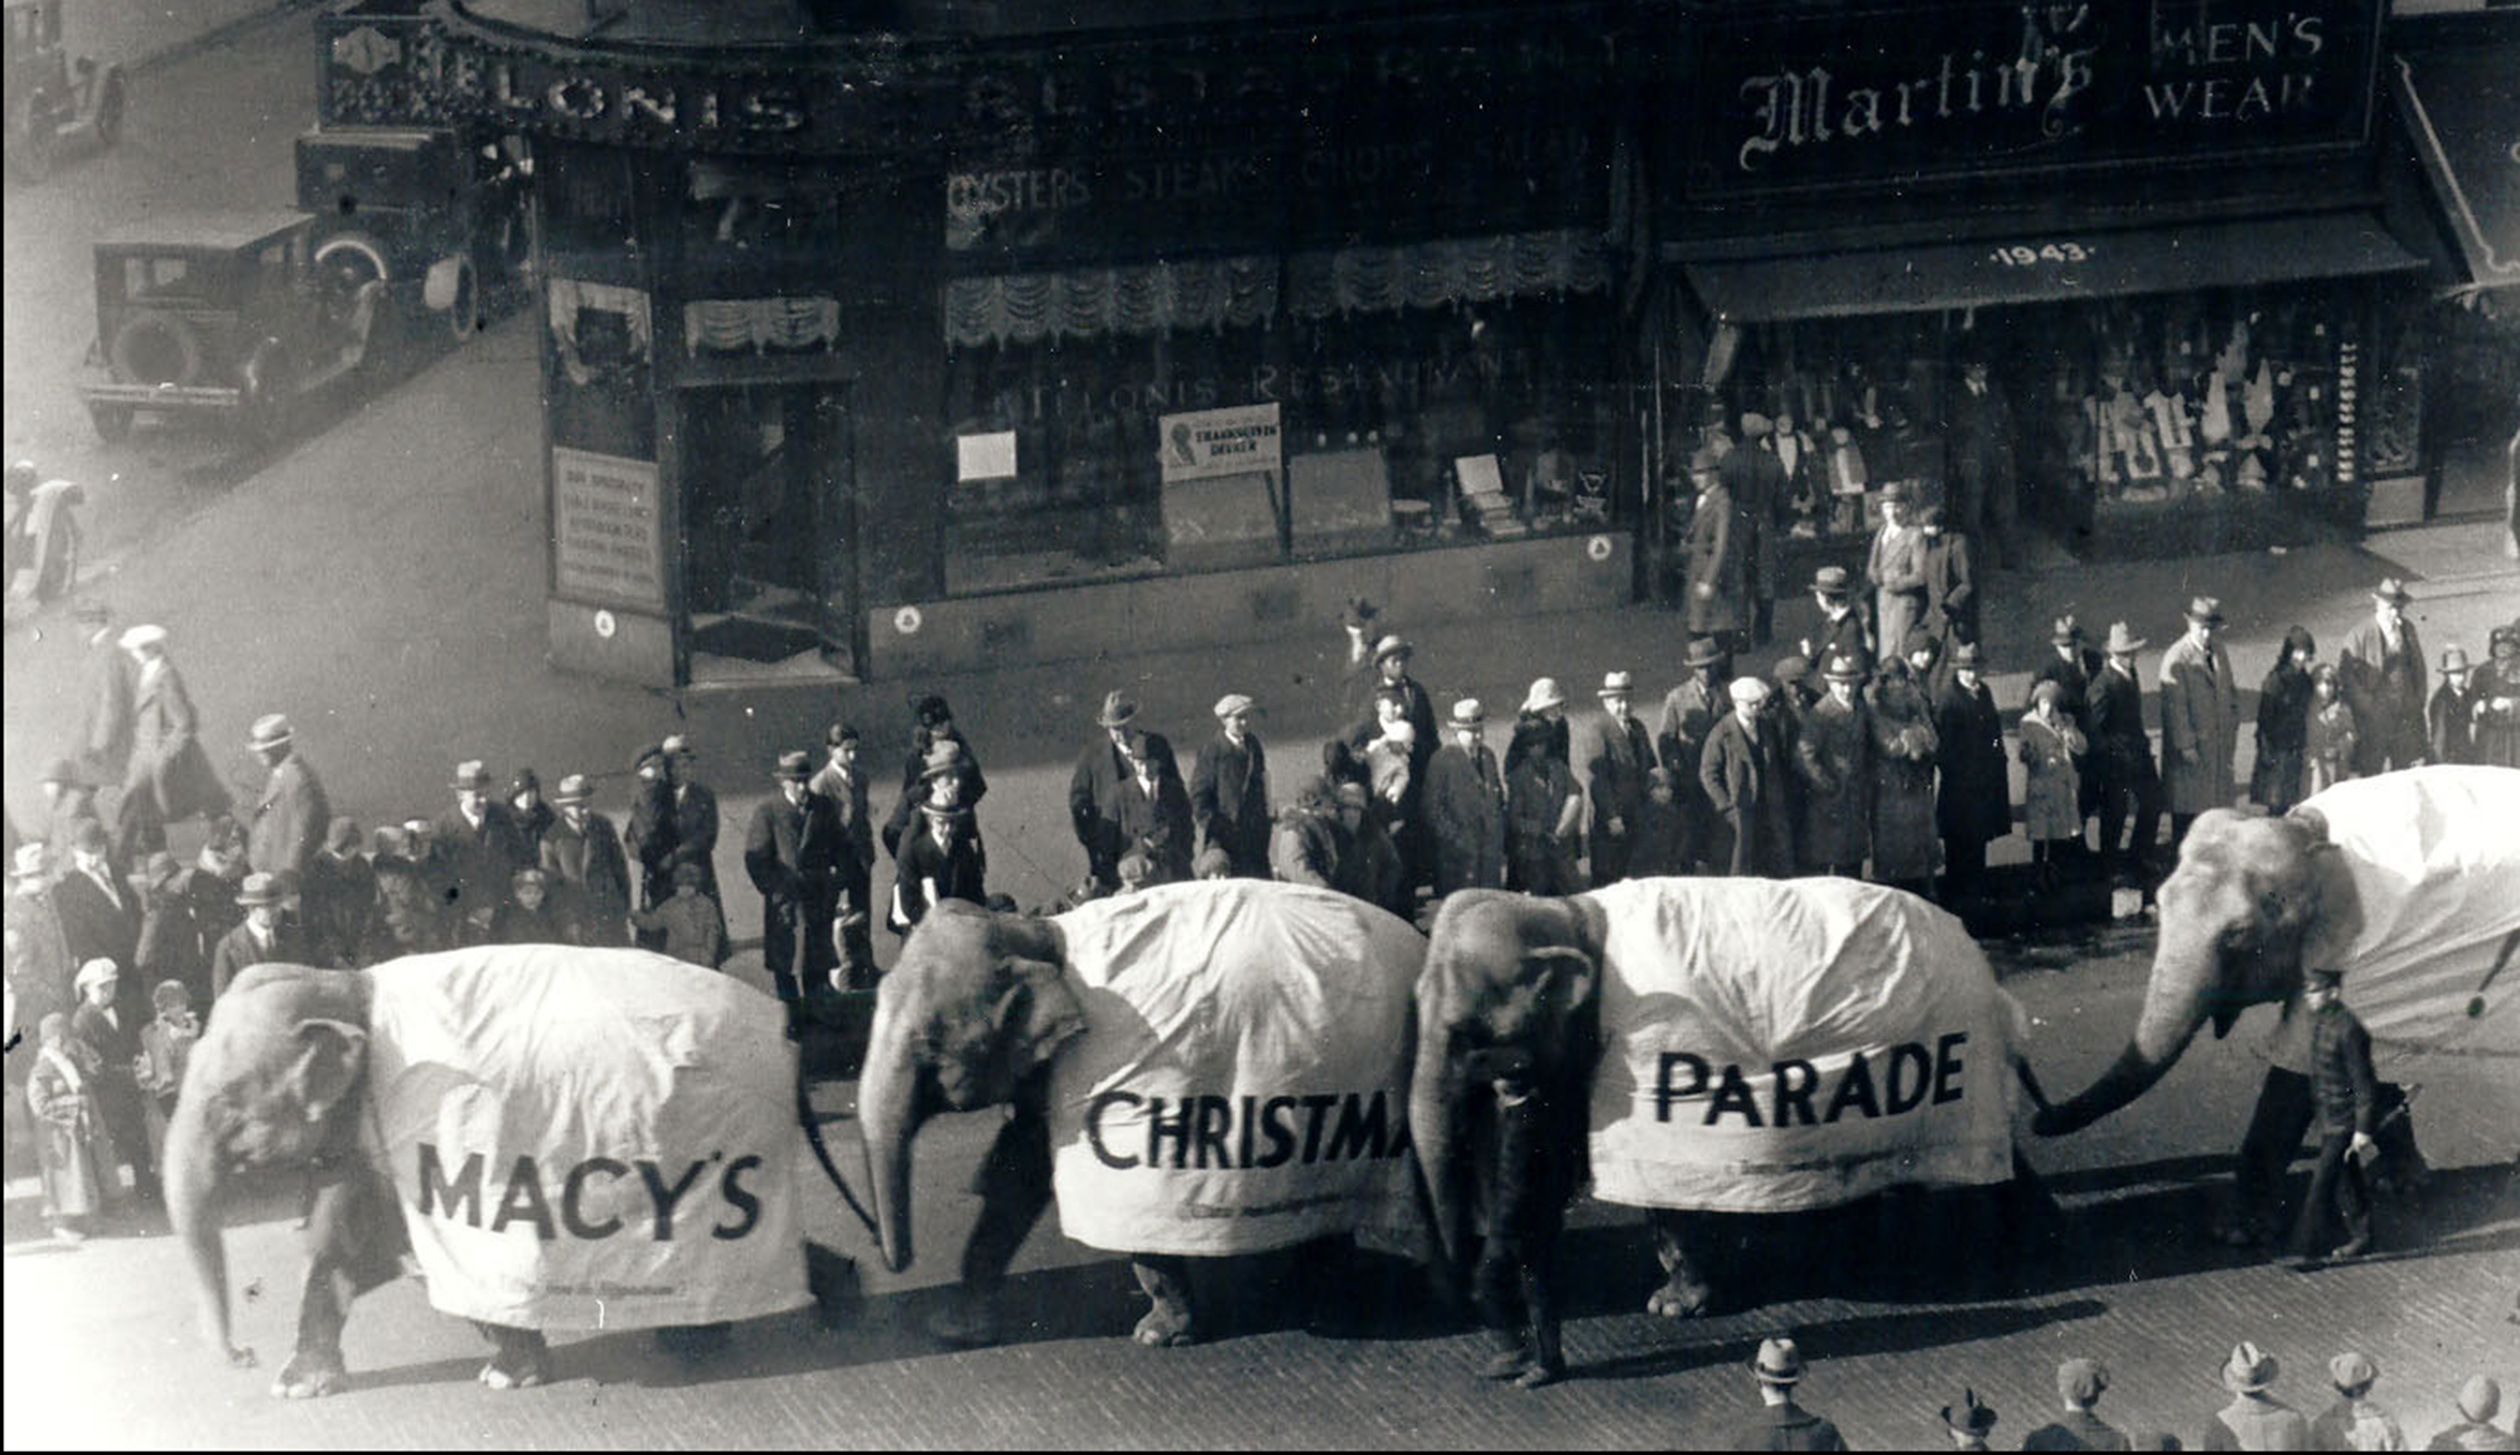 Elephants in the first Macy's Parade, then called Macy's Christmas Parade in 1924. The parade was started by Macy's employees.